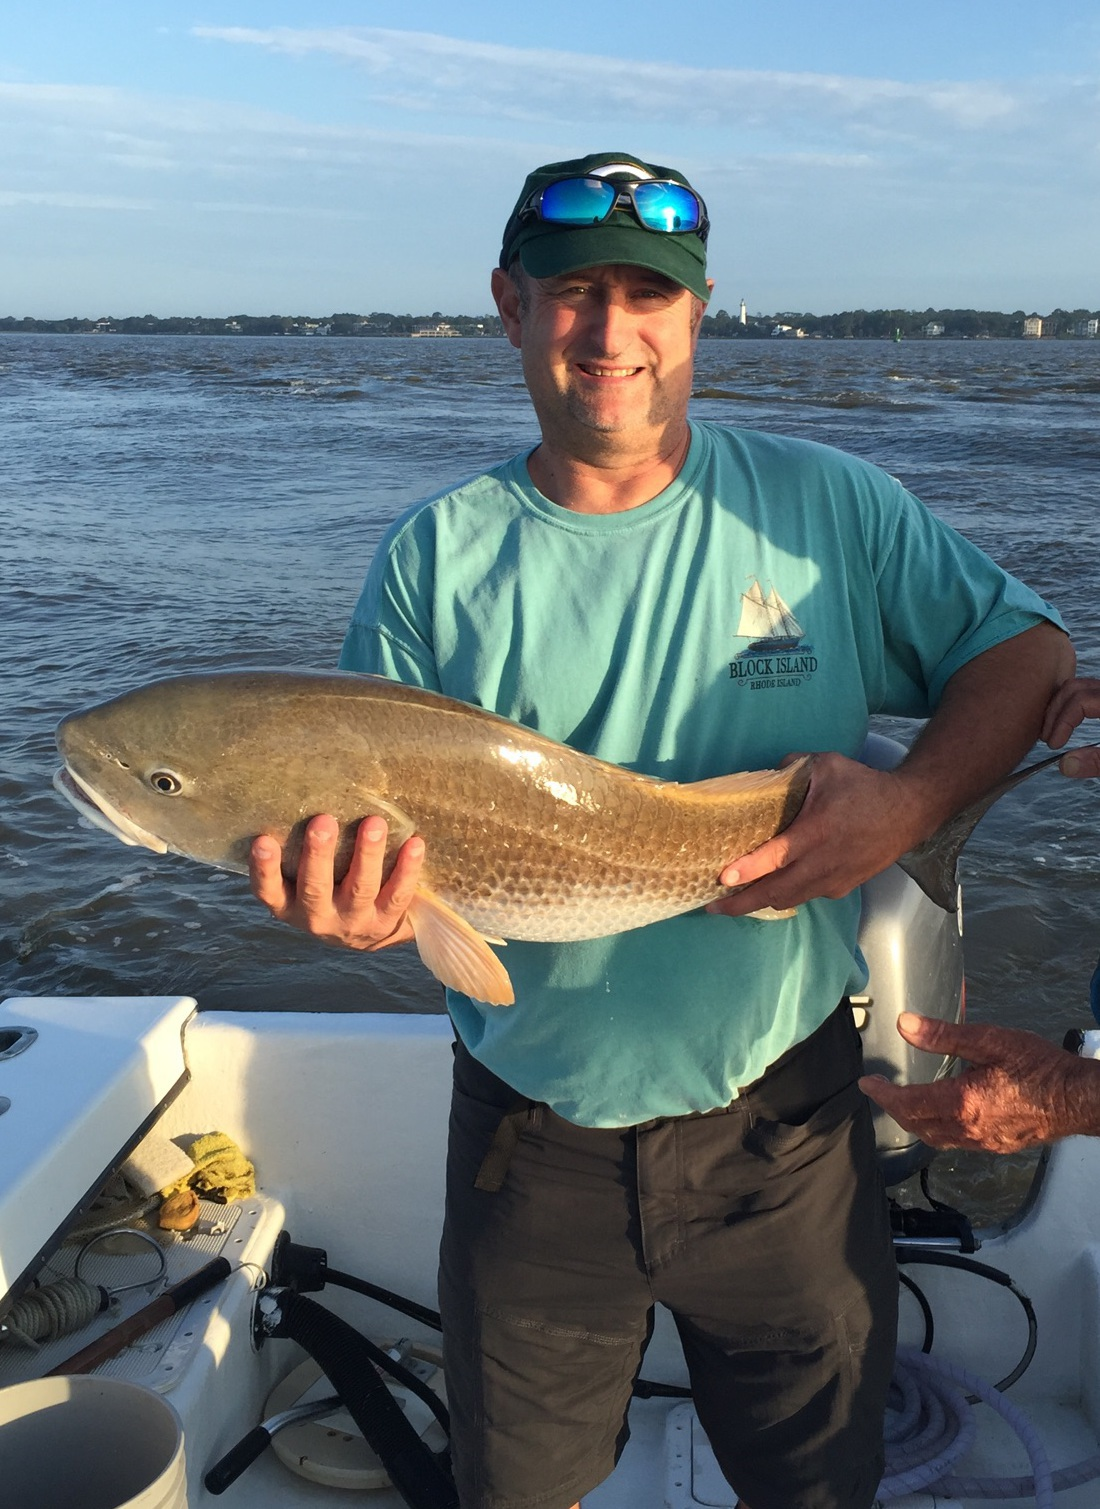 Bullred Drum Fishing St Simons Island, best fishing guides in golden isles of georgia, charter fishing jekyll island